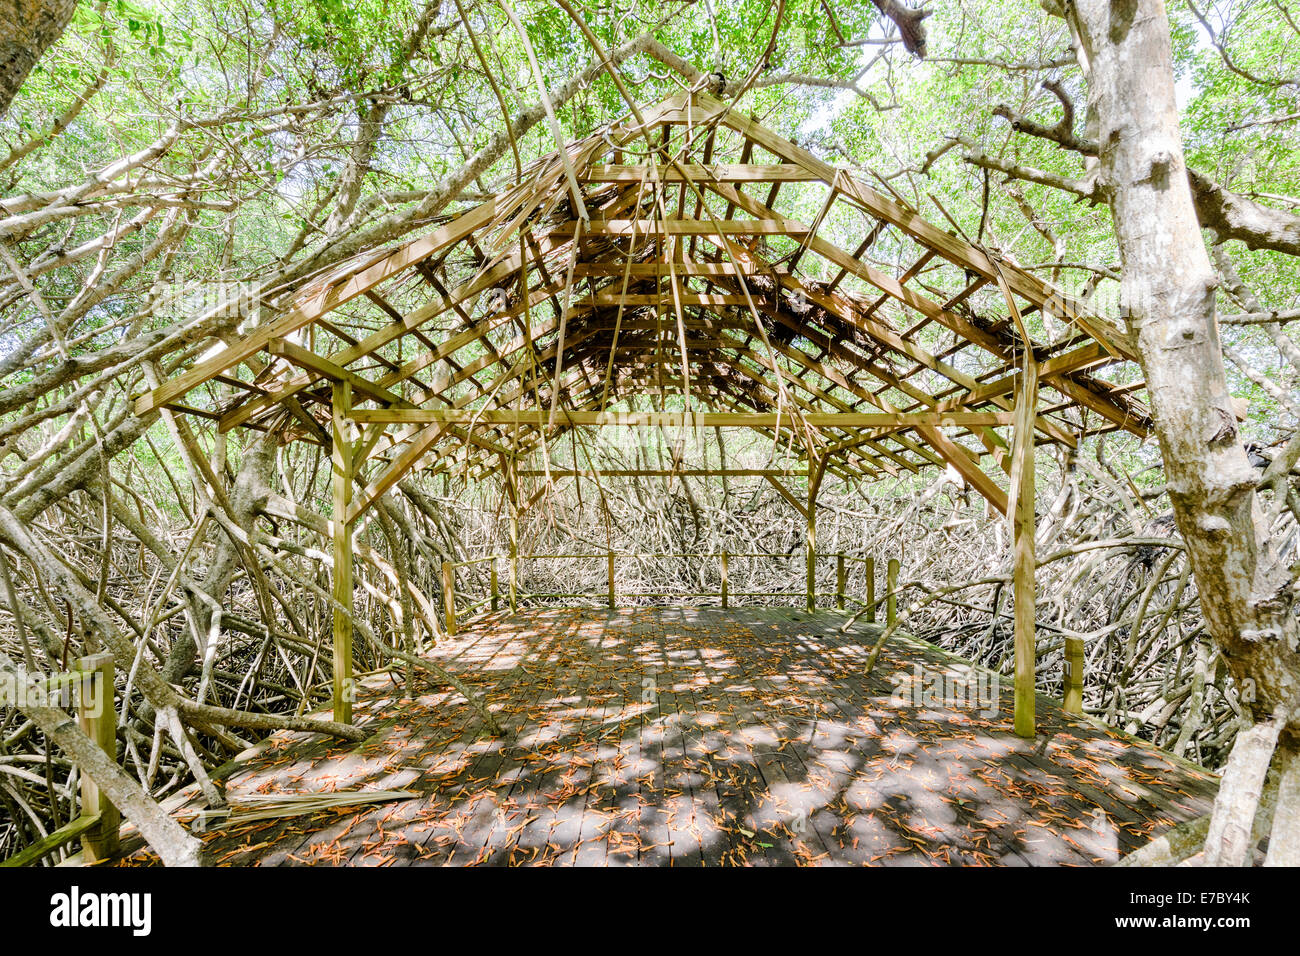 A bandstand in the mangrove forest of Petit Trou Lagoon near the Tobago Plantations Resort. - Stock Image